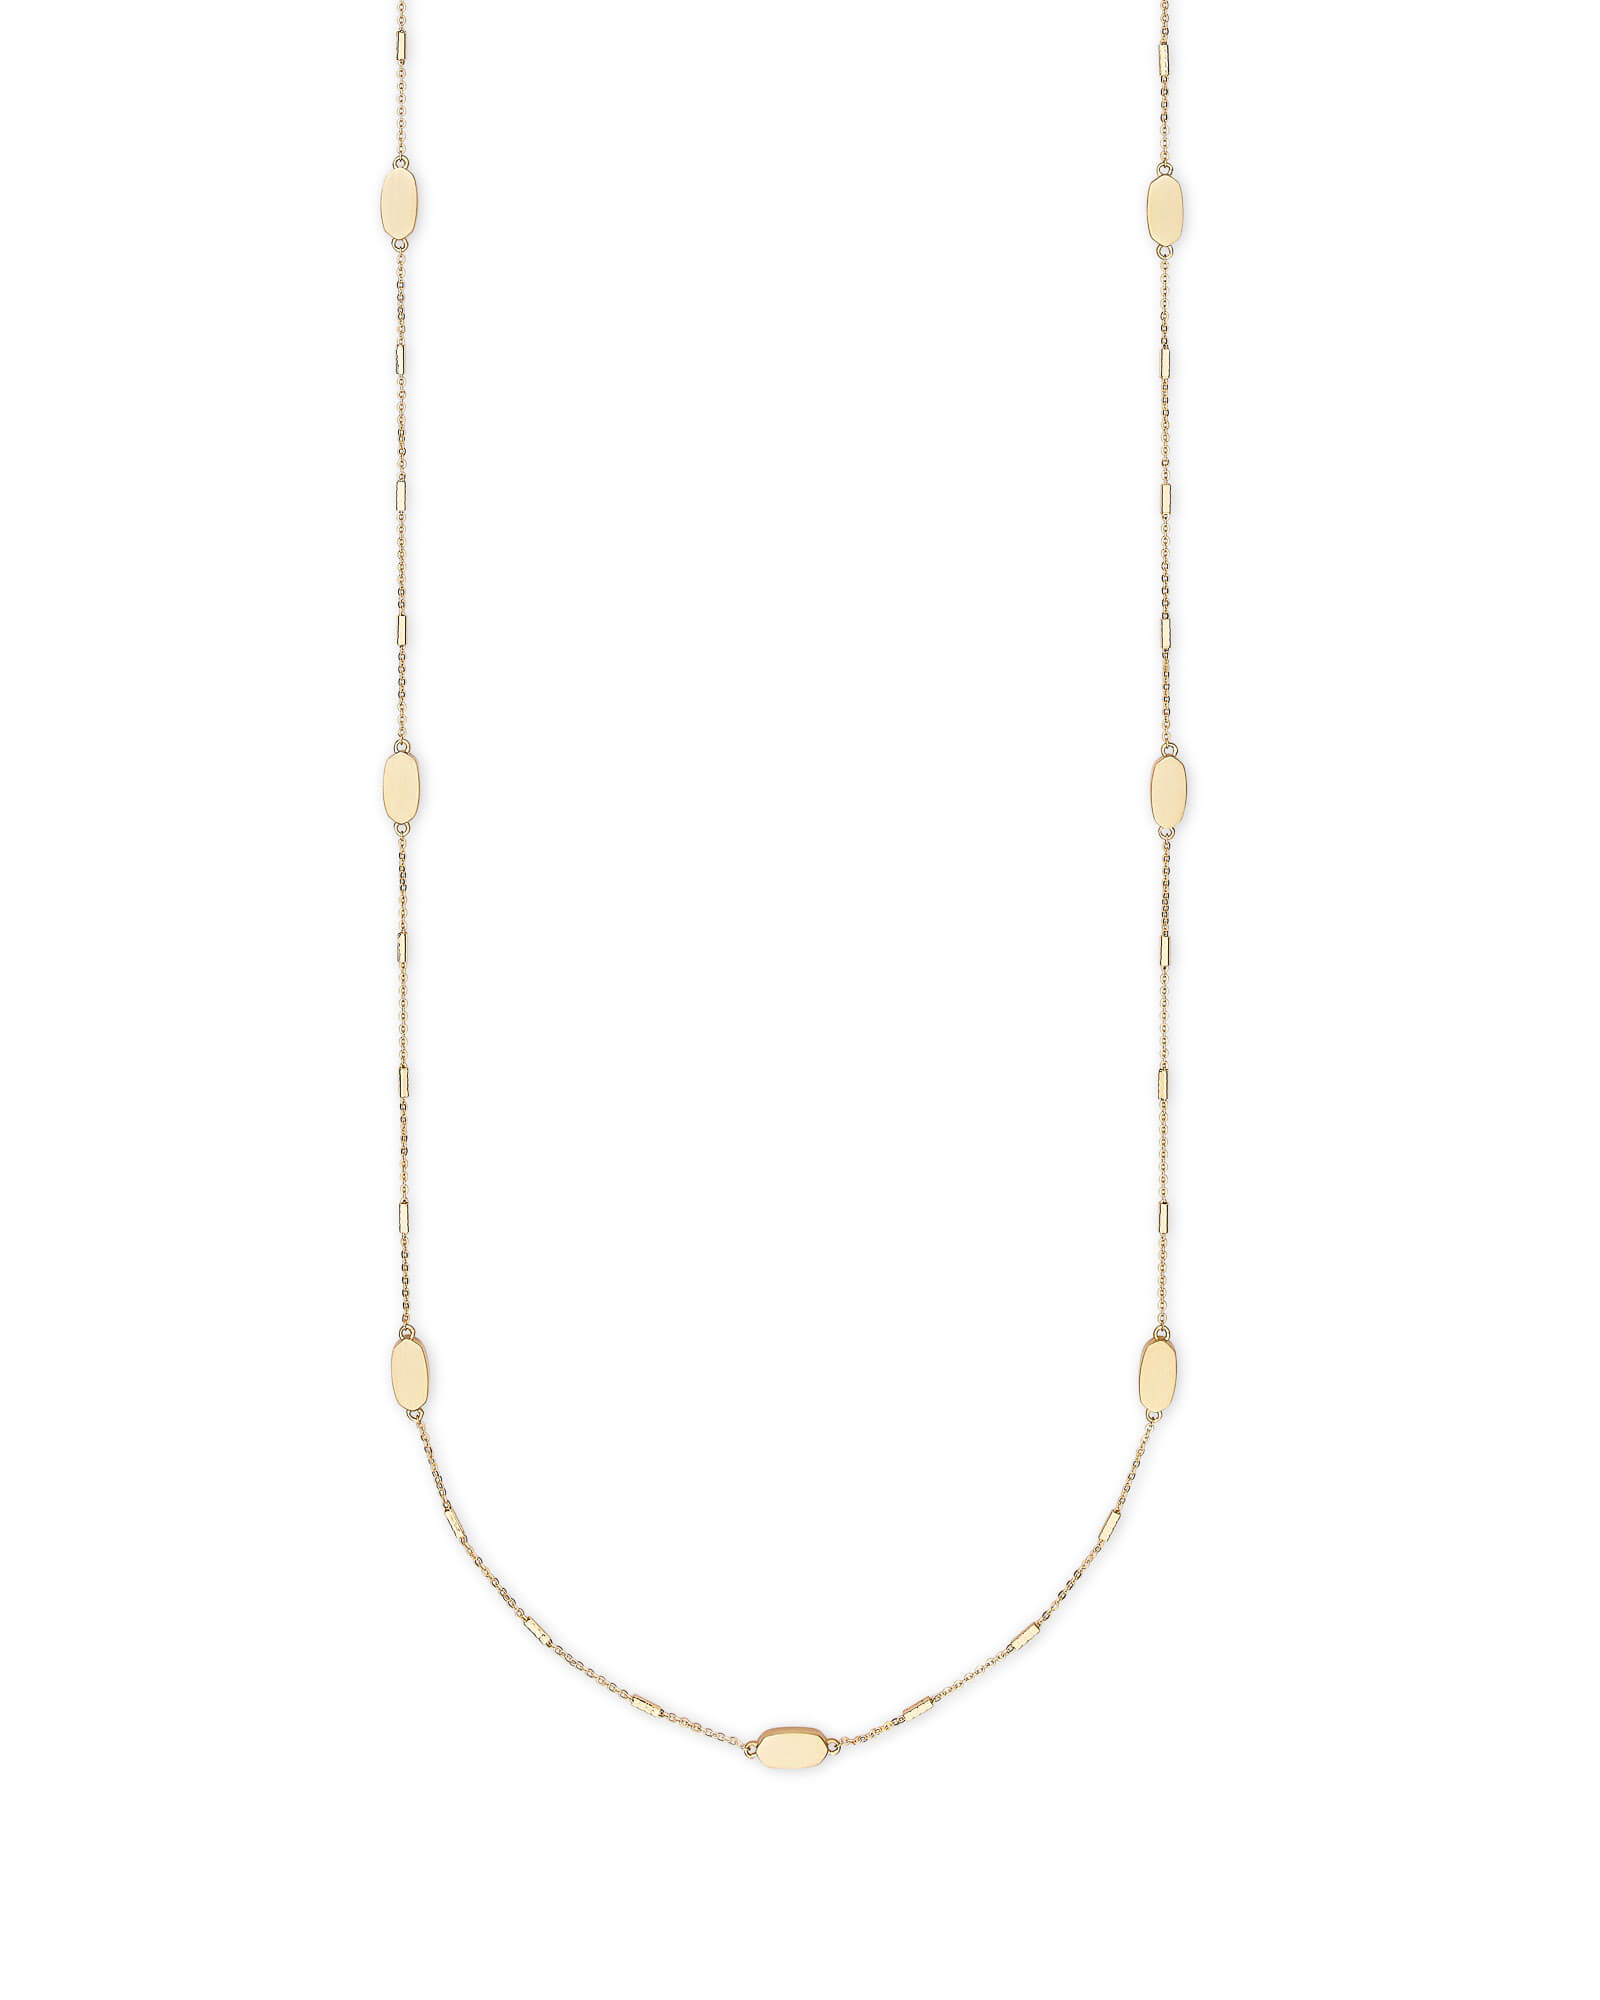 Franklin Long Necklace in Gold